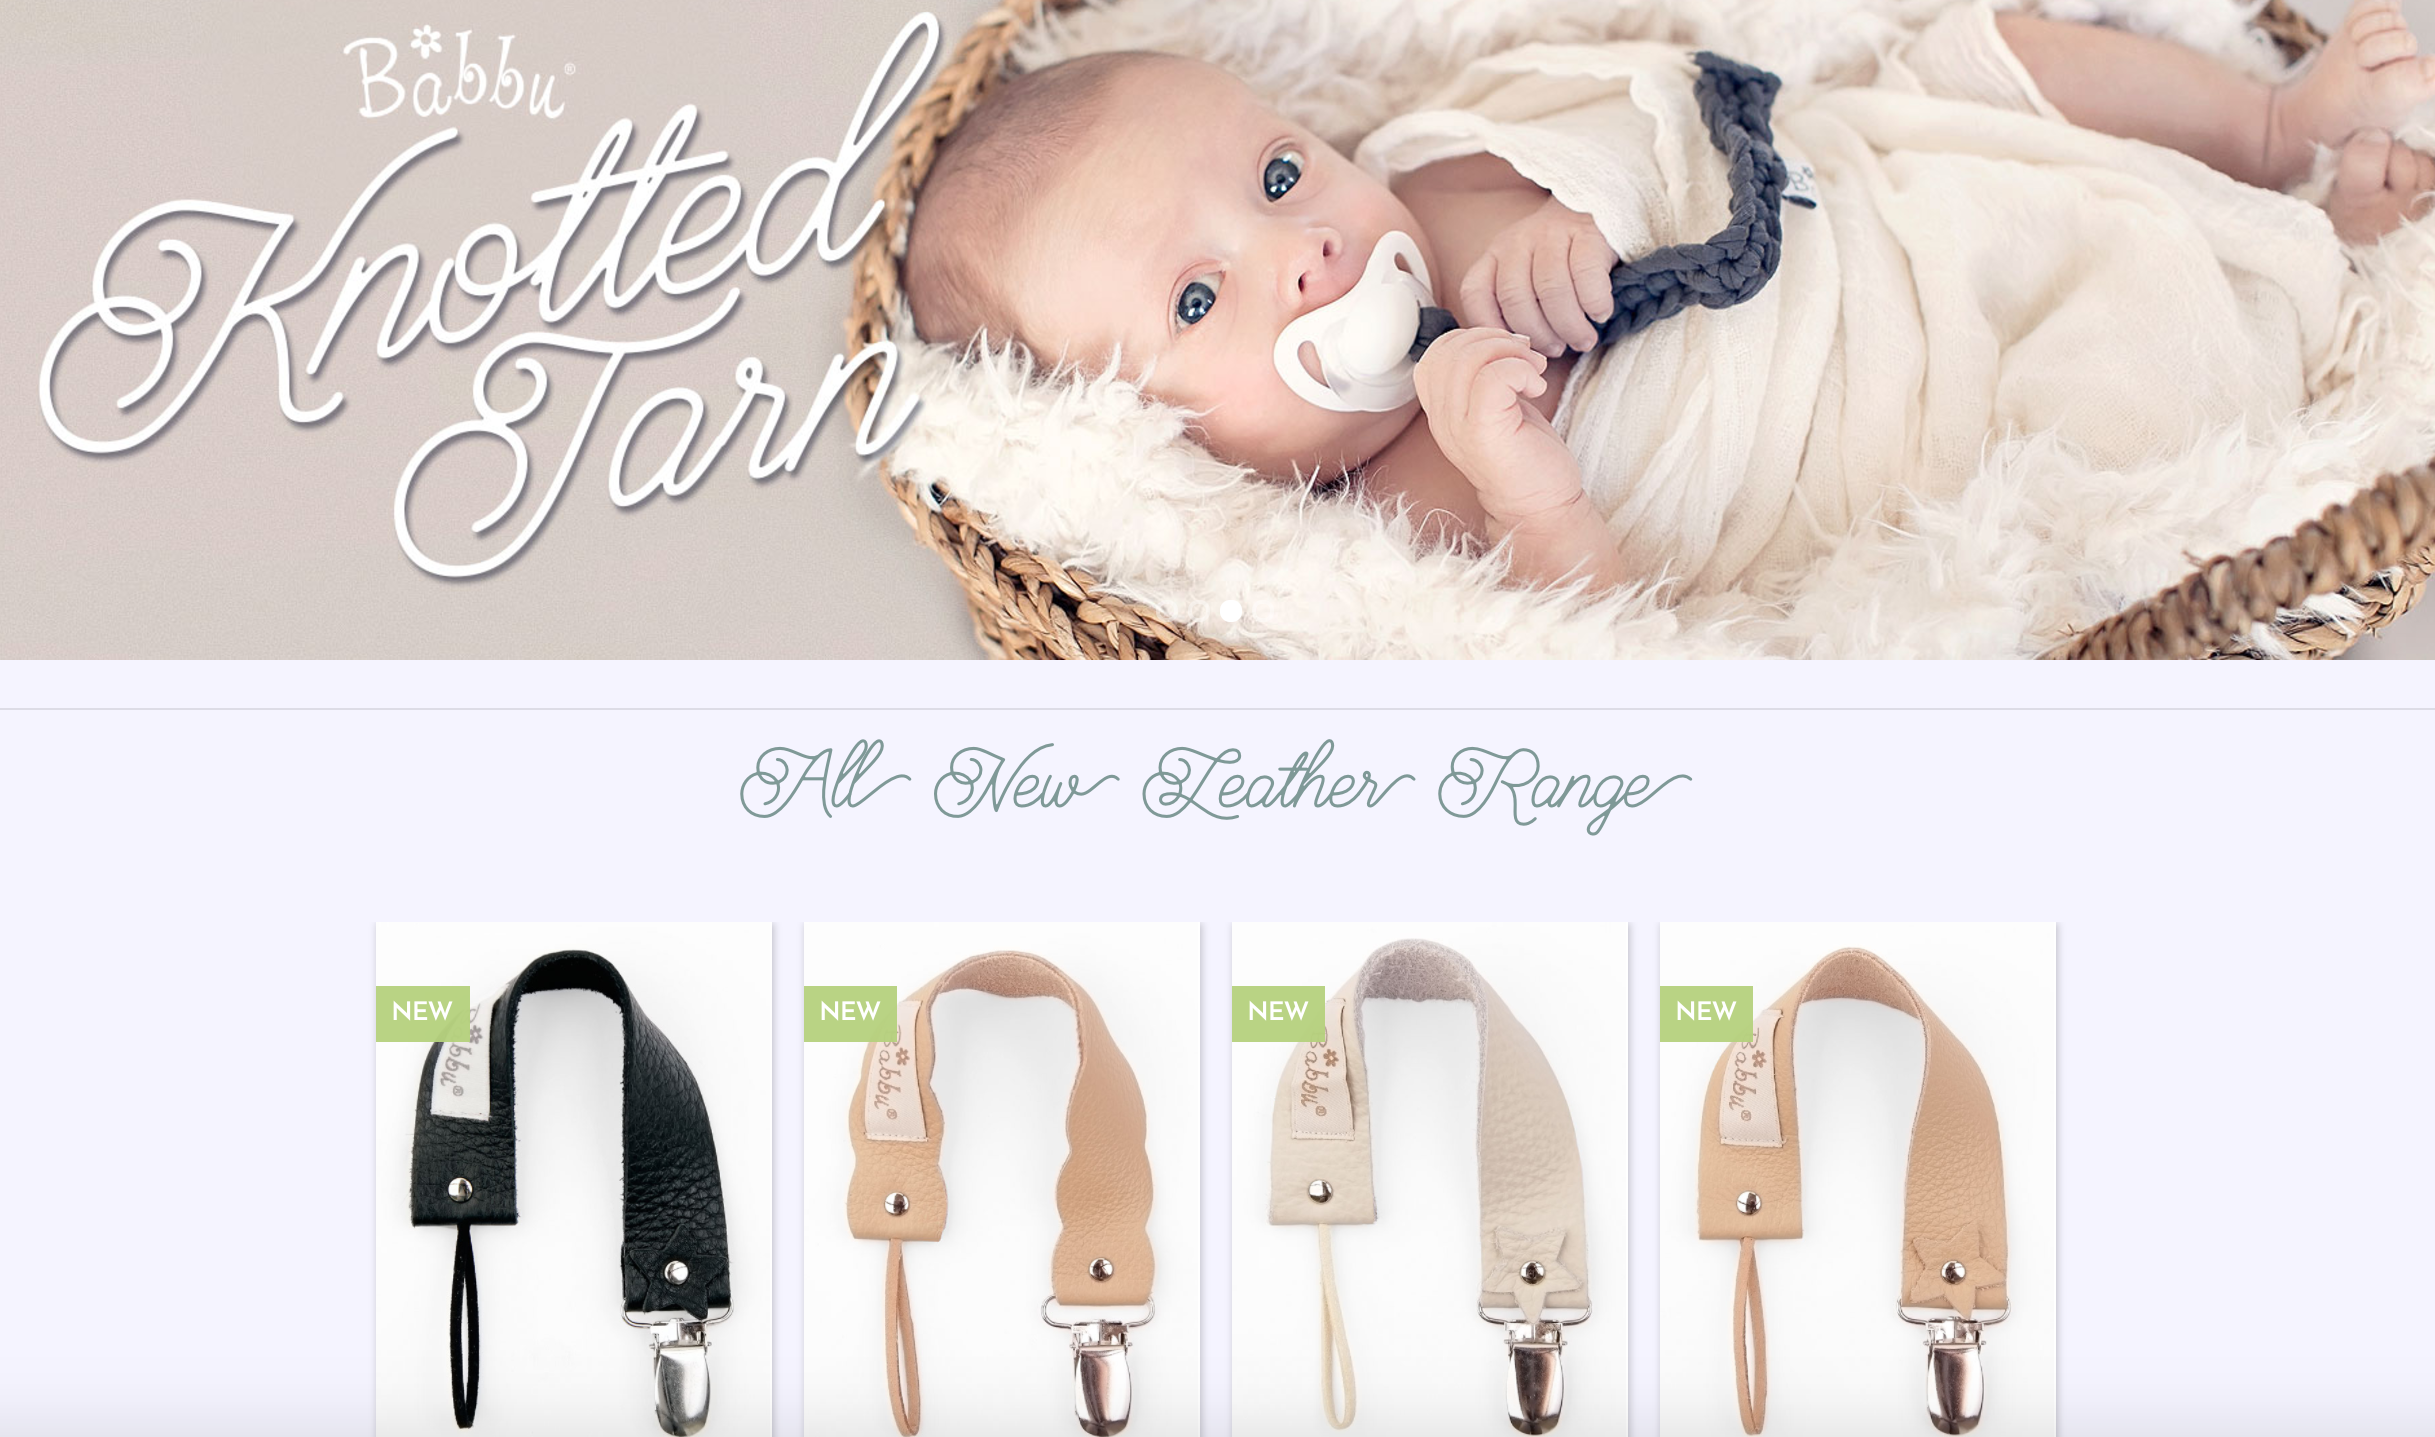 Babbu - Dummy Clips & Unique Baby Products